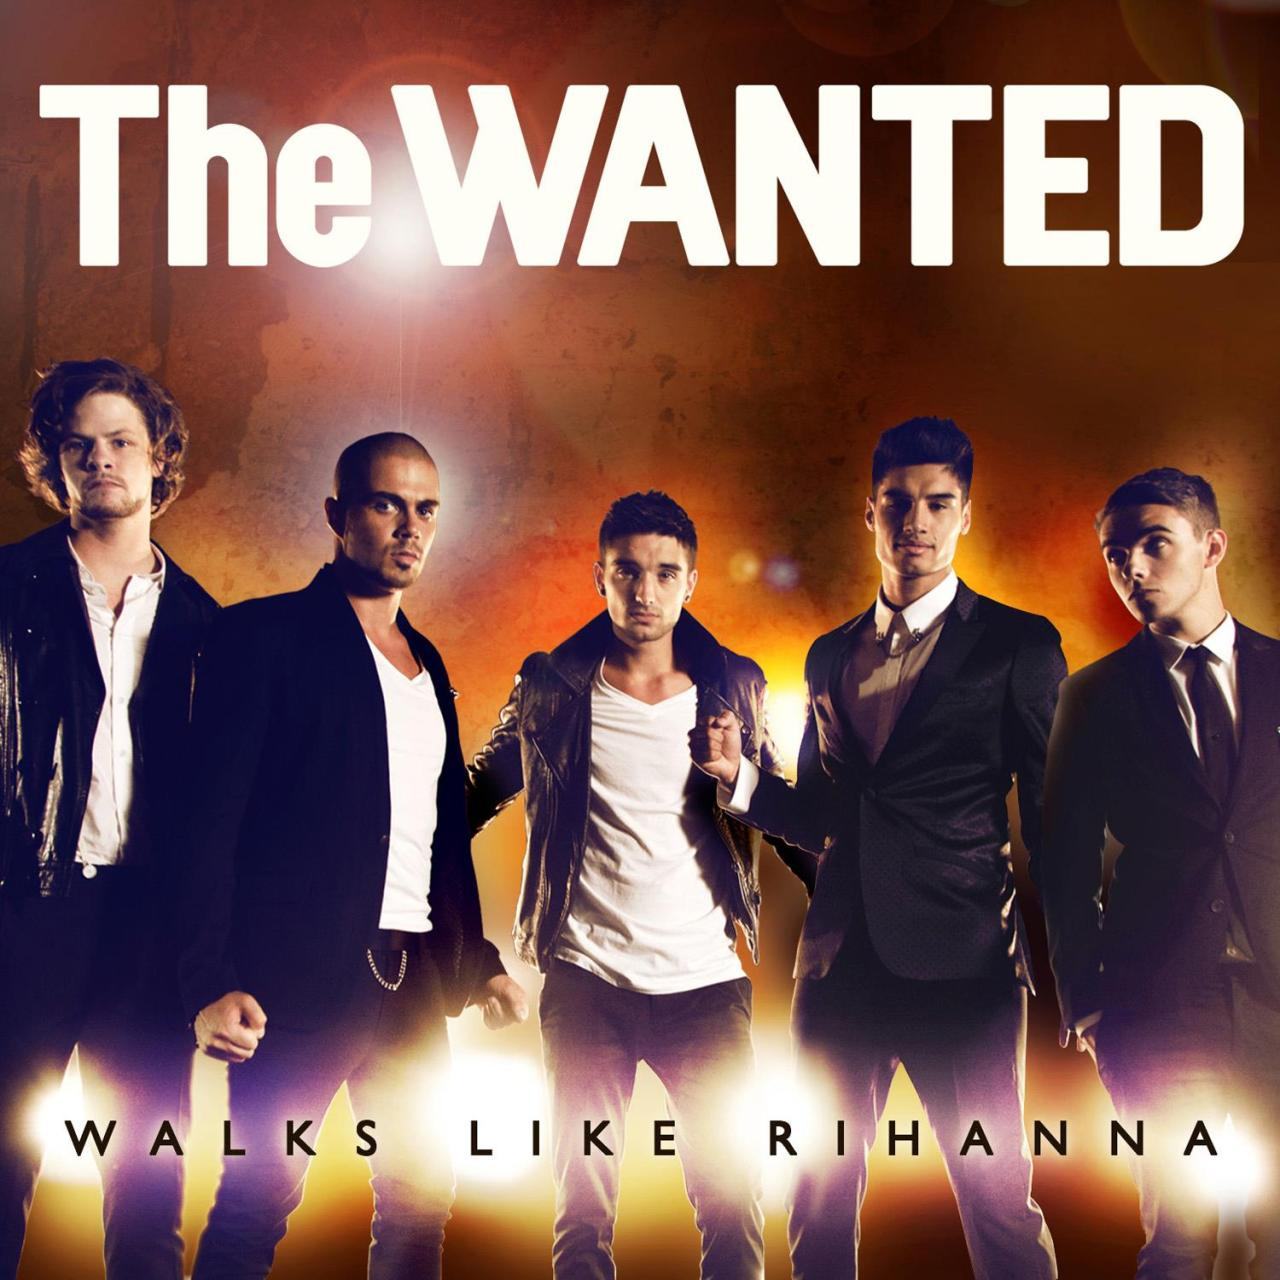 thewantedblog:  So then here's the official artwork for our new single Walks Like Rihanna which drops on June 23!!! VIDEO COMING SOOOOOOOOON!!!! x